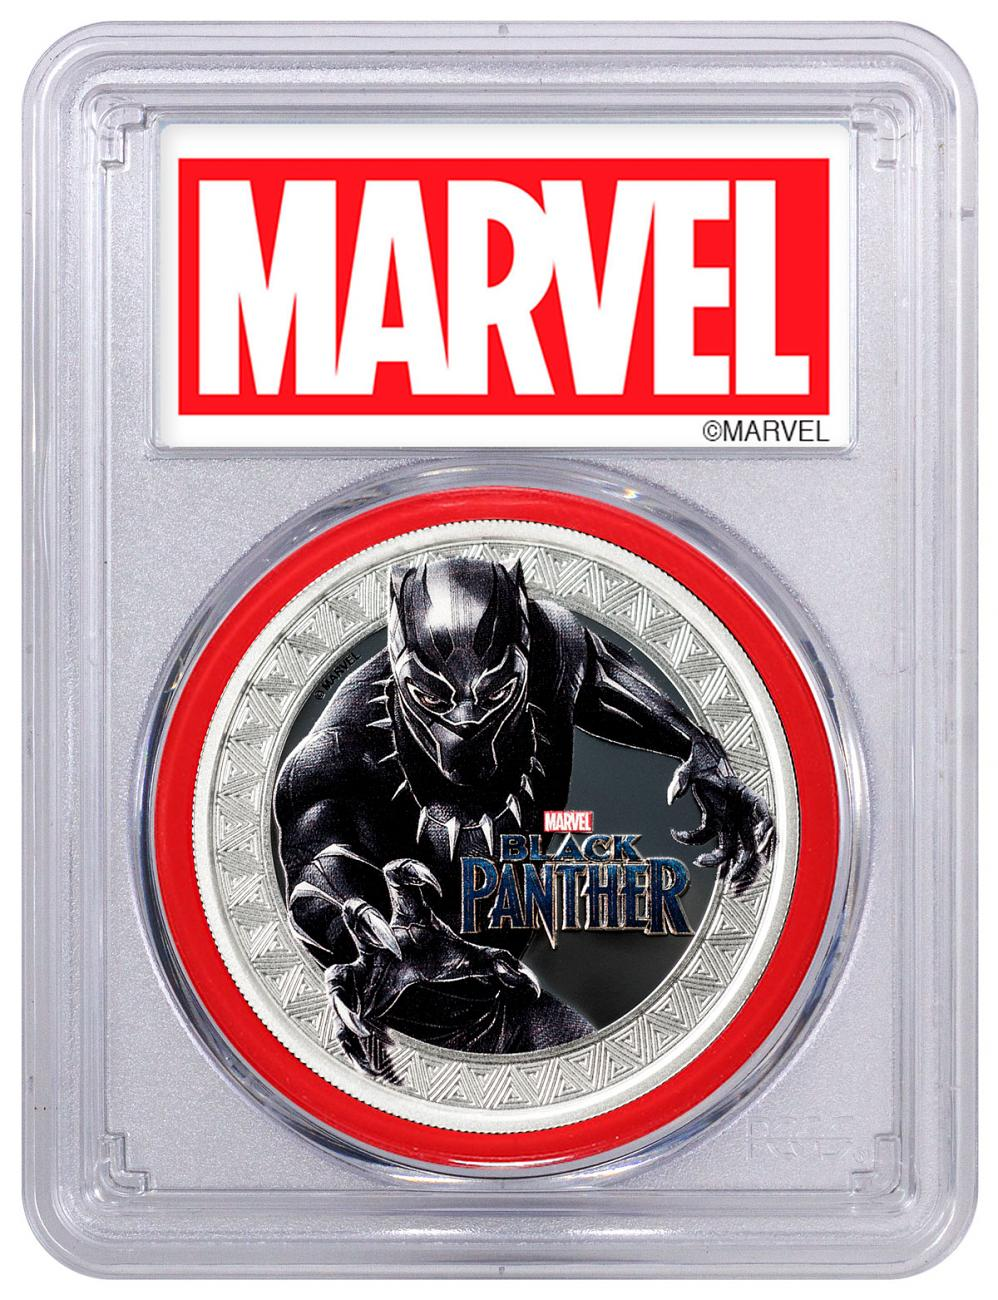 2018 Tuvalu Marvel Series - Black Panther 1 oz Silver Colorized Proof $1 Coin PCGS PR69 DCAM FS Red Gasket Exclusive Marvel Label